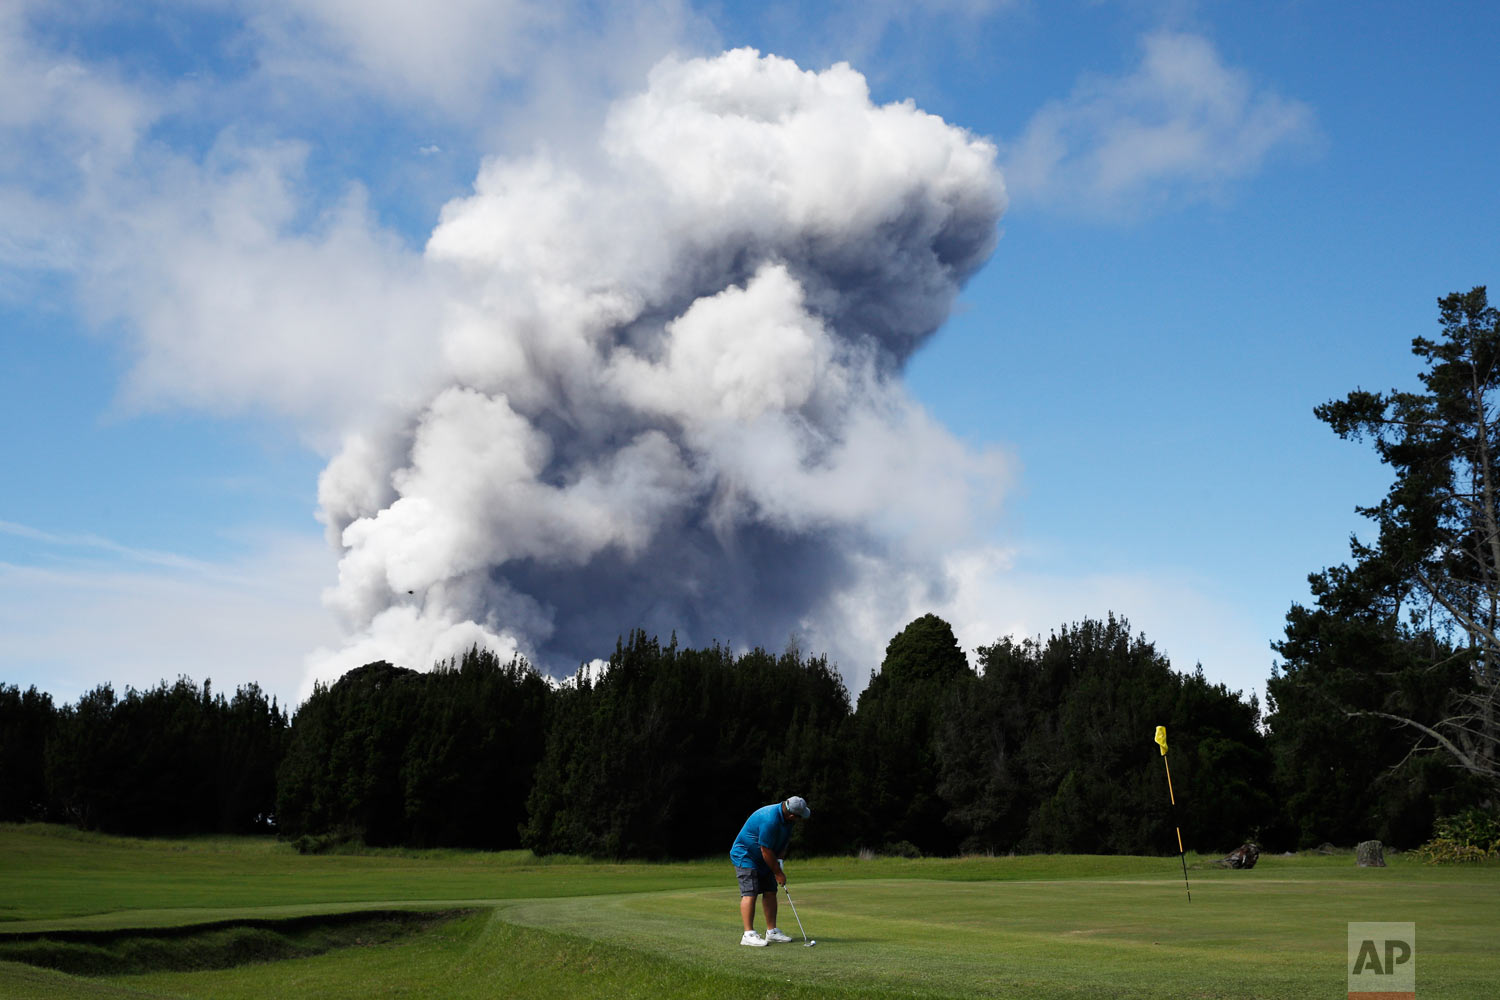 Doug Ralston plays golf in Volcano, Hawaii, as a huge ash plume rises from the summit of the Kiluaea volcano Monday, May 21, 2018. Lava from Hawaii's Kilauea volcano poured into the sea and set off a chemical reaction that created giant clouds of acid and fine glass particles. (AP Photo/Jae C. Hong)